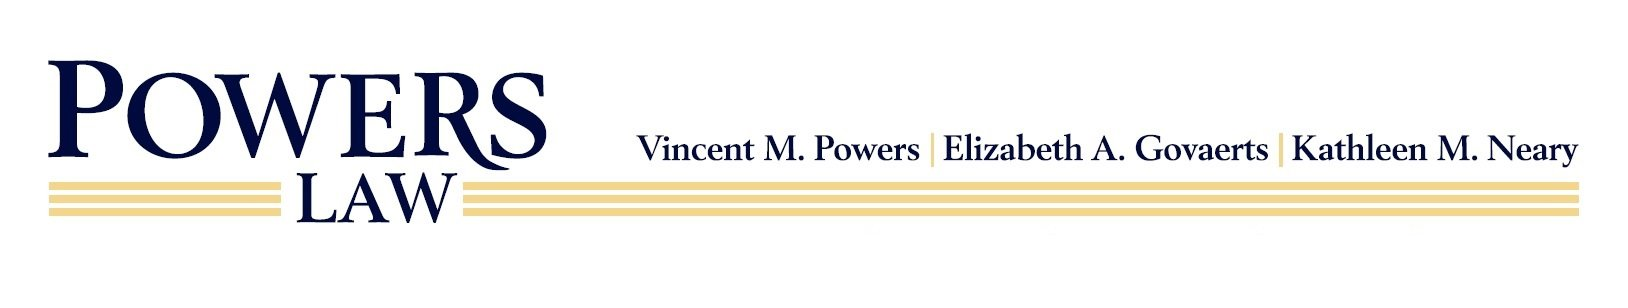 Powers Law logo